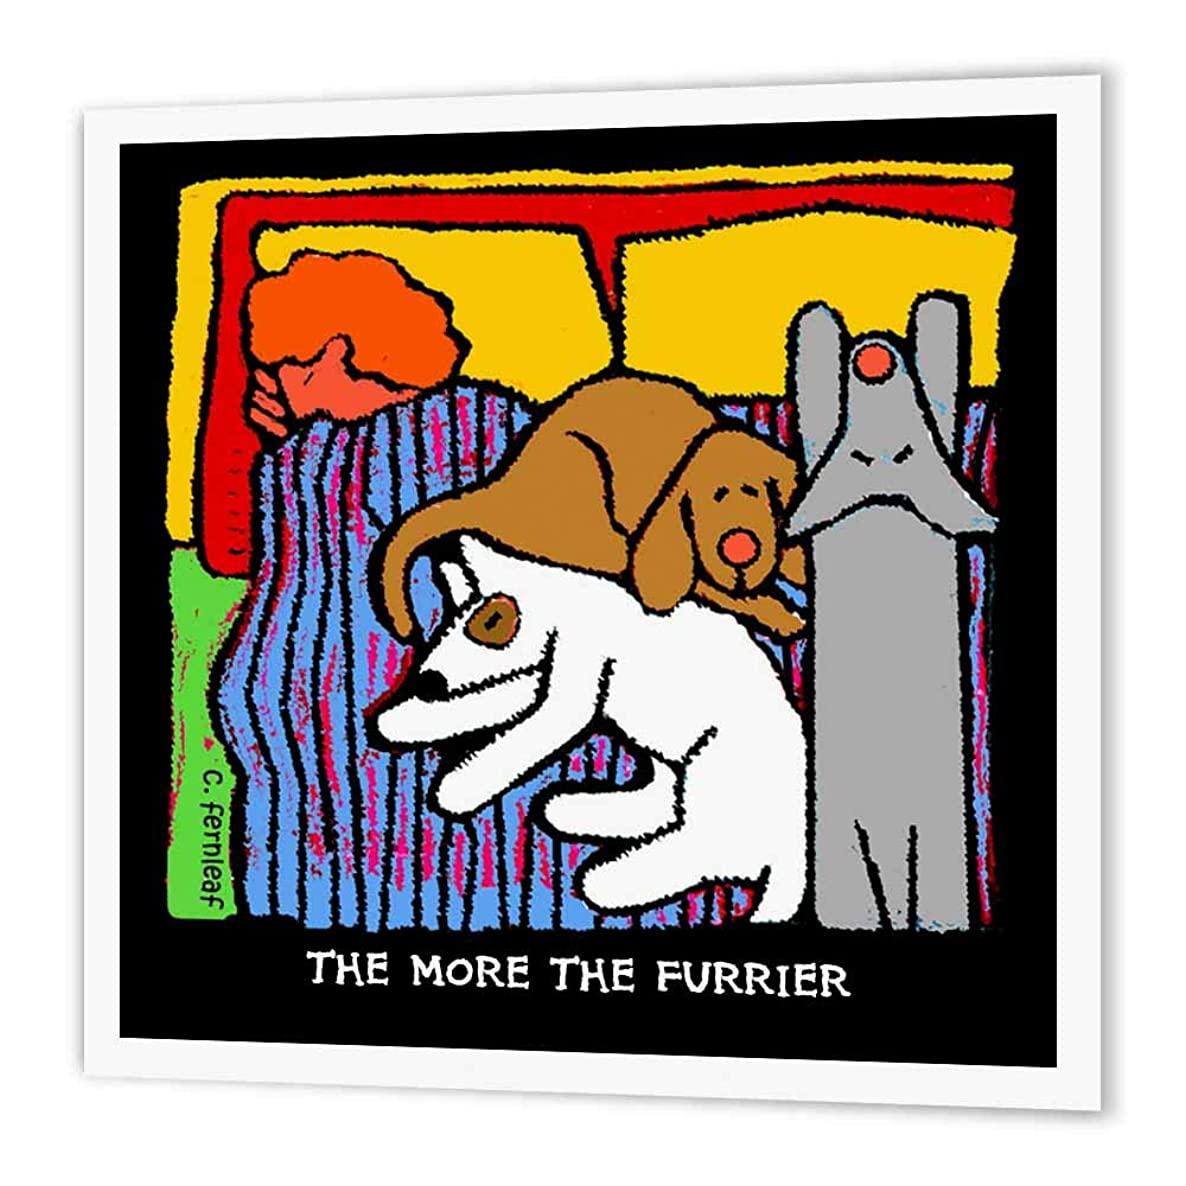 3dRose ht_36691_3 Dog Bed, Cartoon Dogs, Dogs, Dog, Funny Dogs, Puppies. Pets-Iron on Heat Transfer Paper for White Material, 10 by 10-Inch